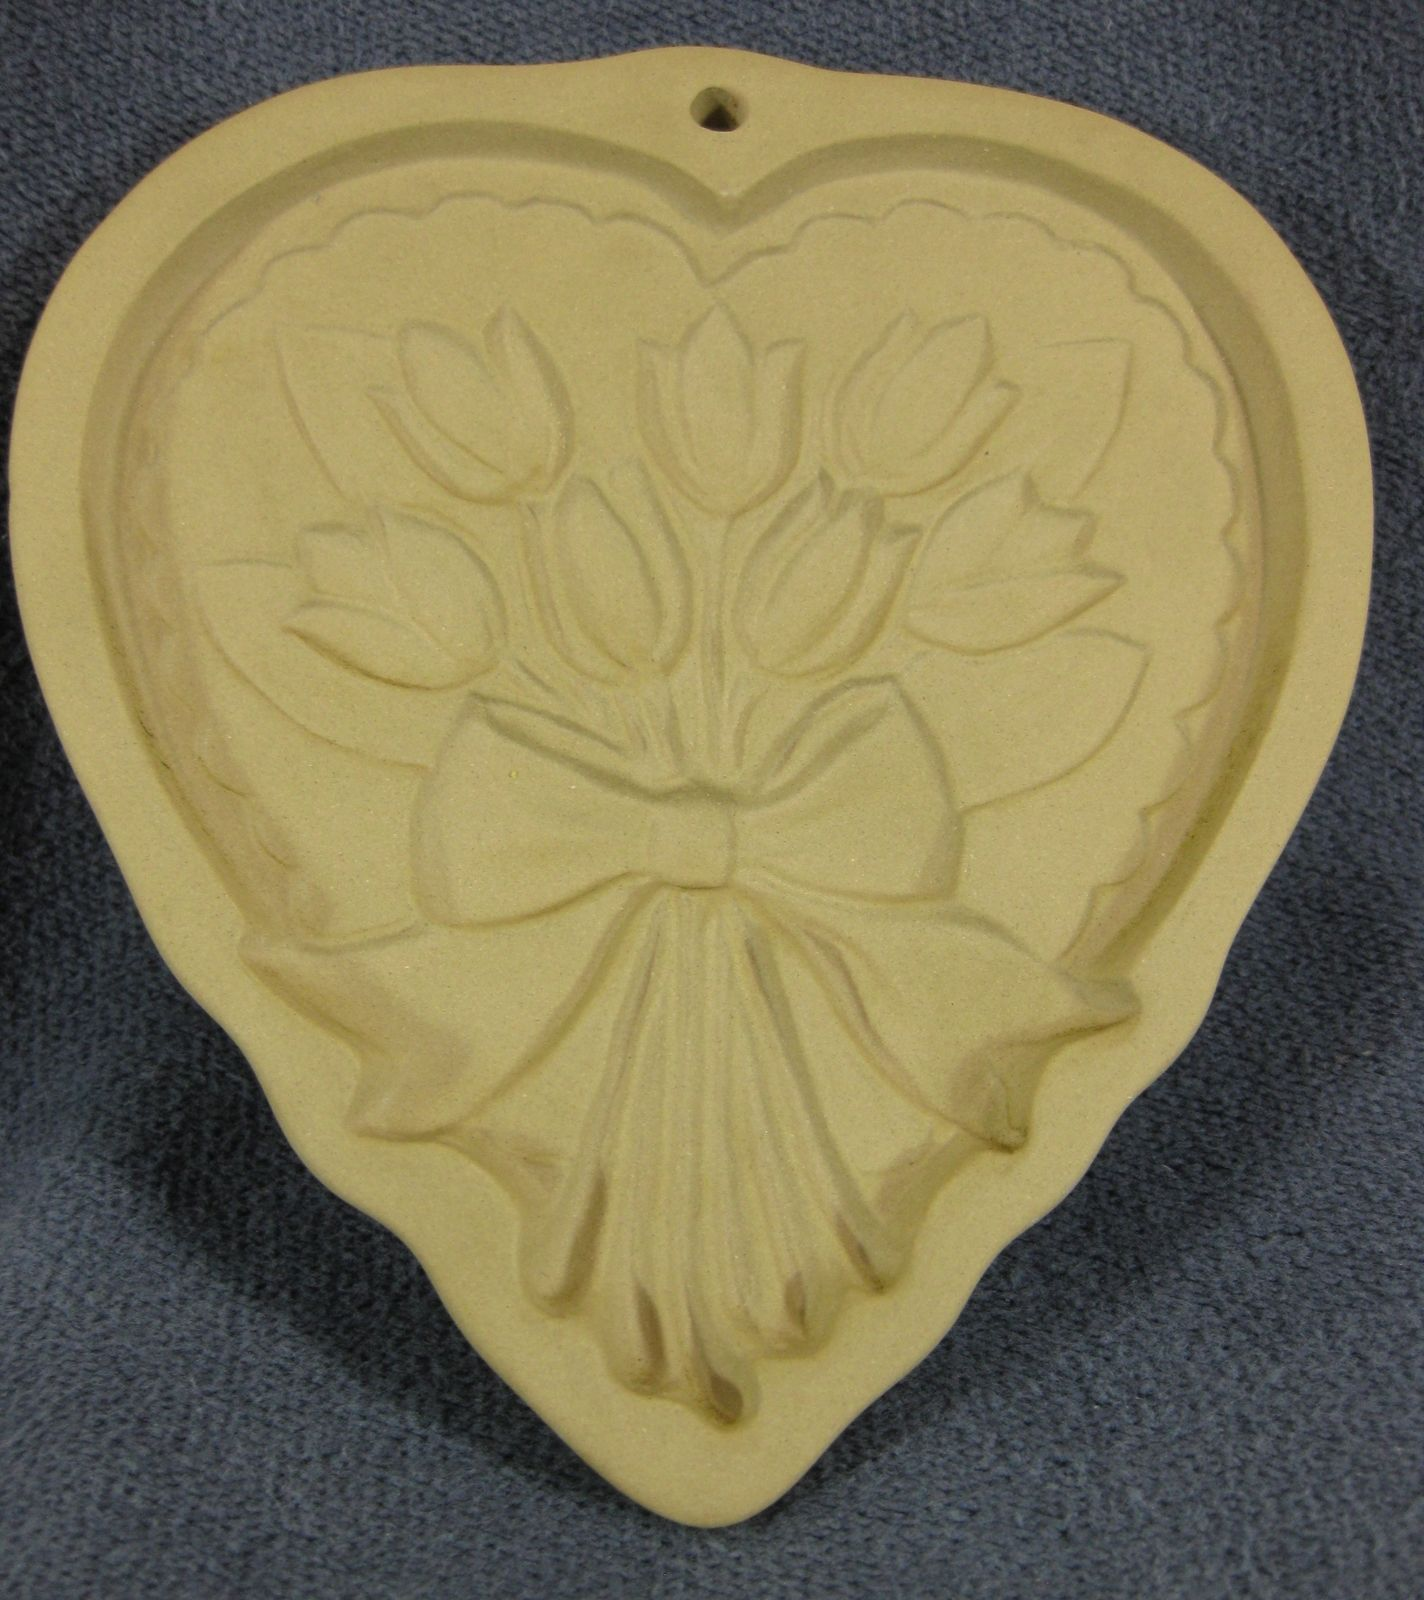 Brown Bag Cookie Art Heart with Tulip Bouquet Mold Hill Design 1989 - $17.95